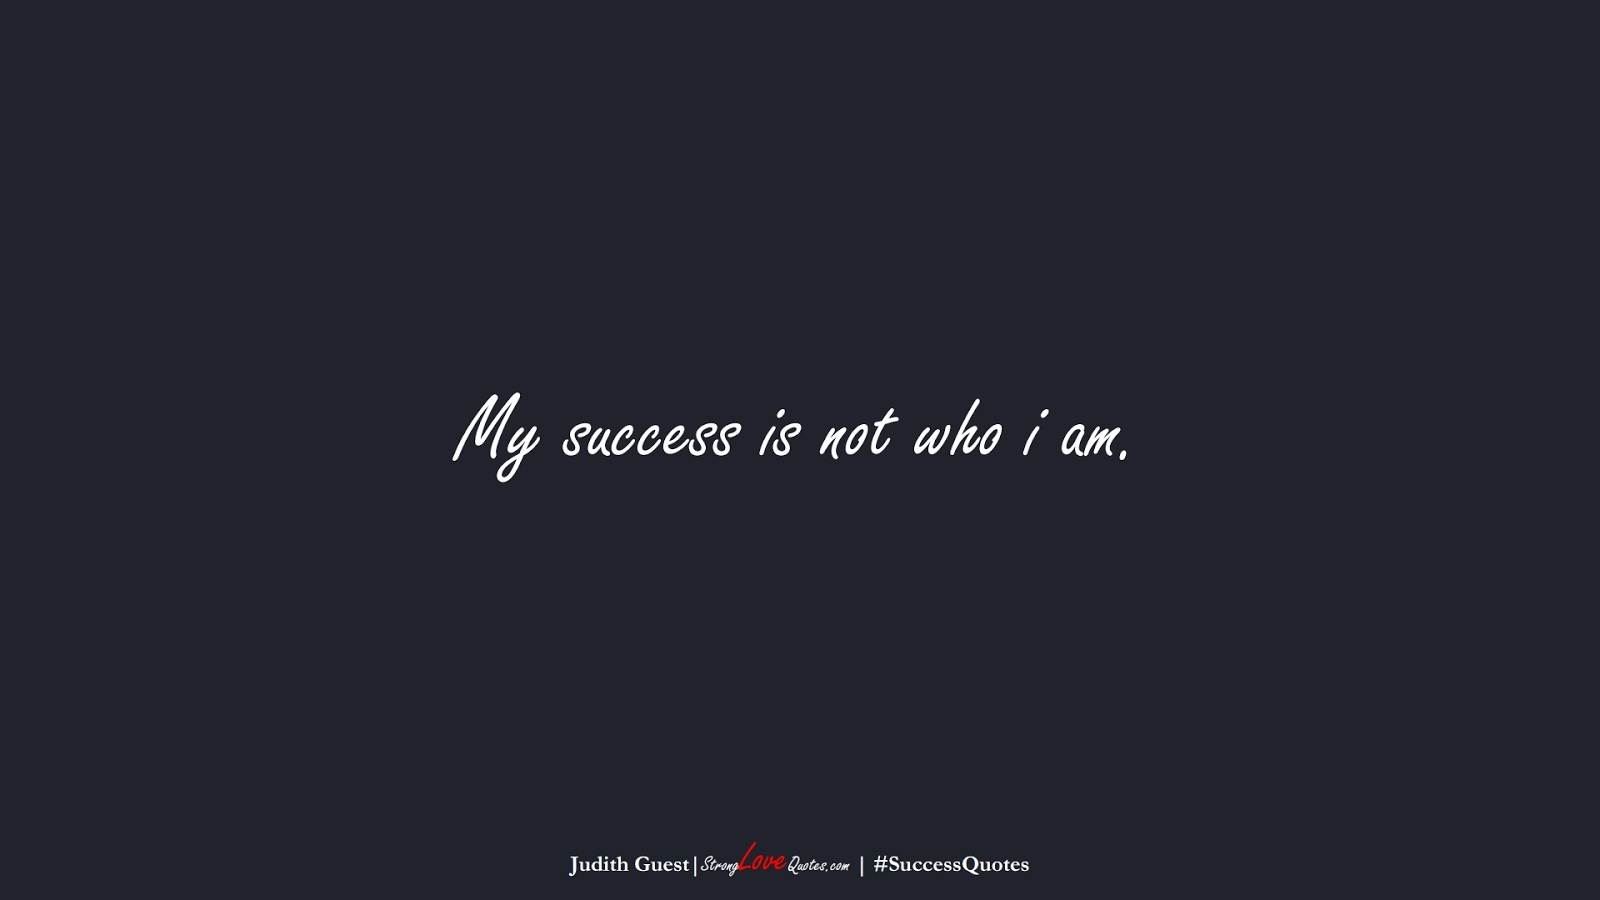 My success is not who i am. (Judith Guest);  #SuccessQuotes